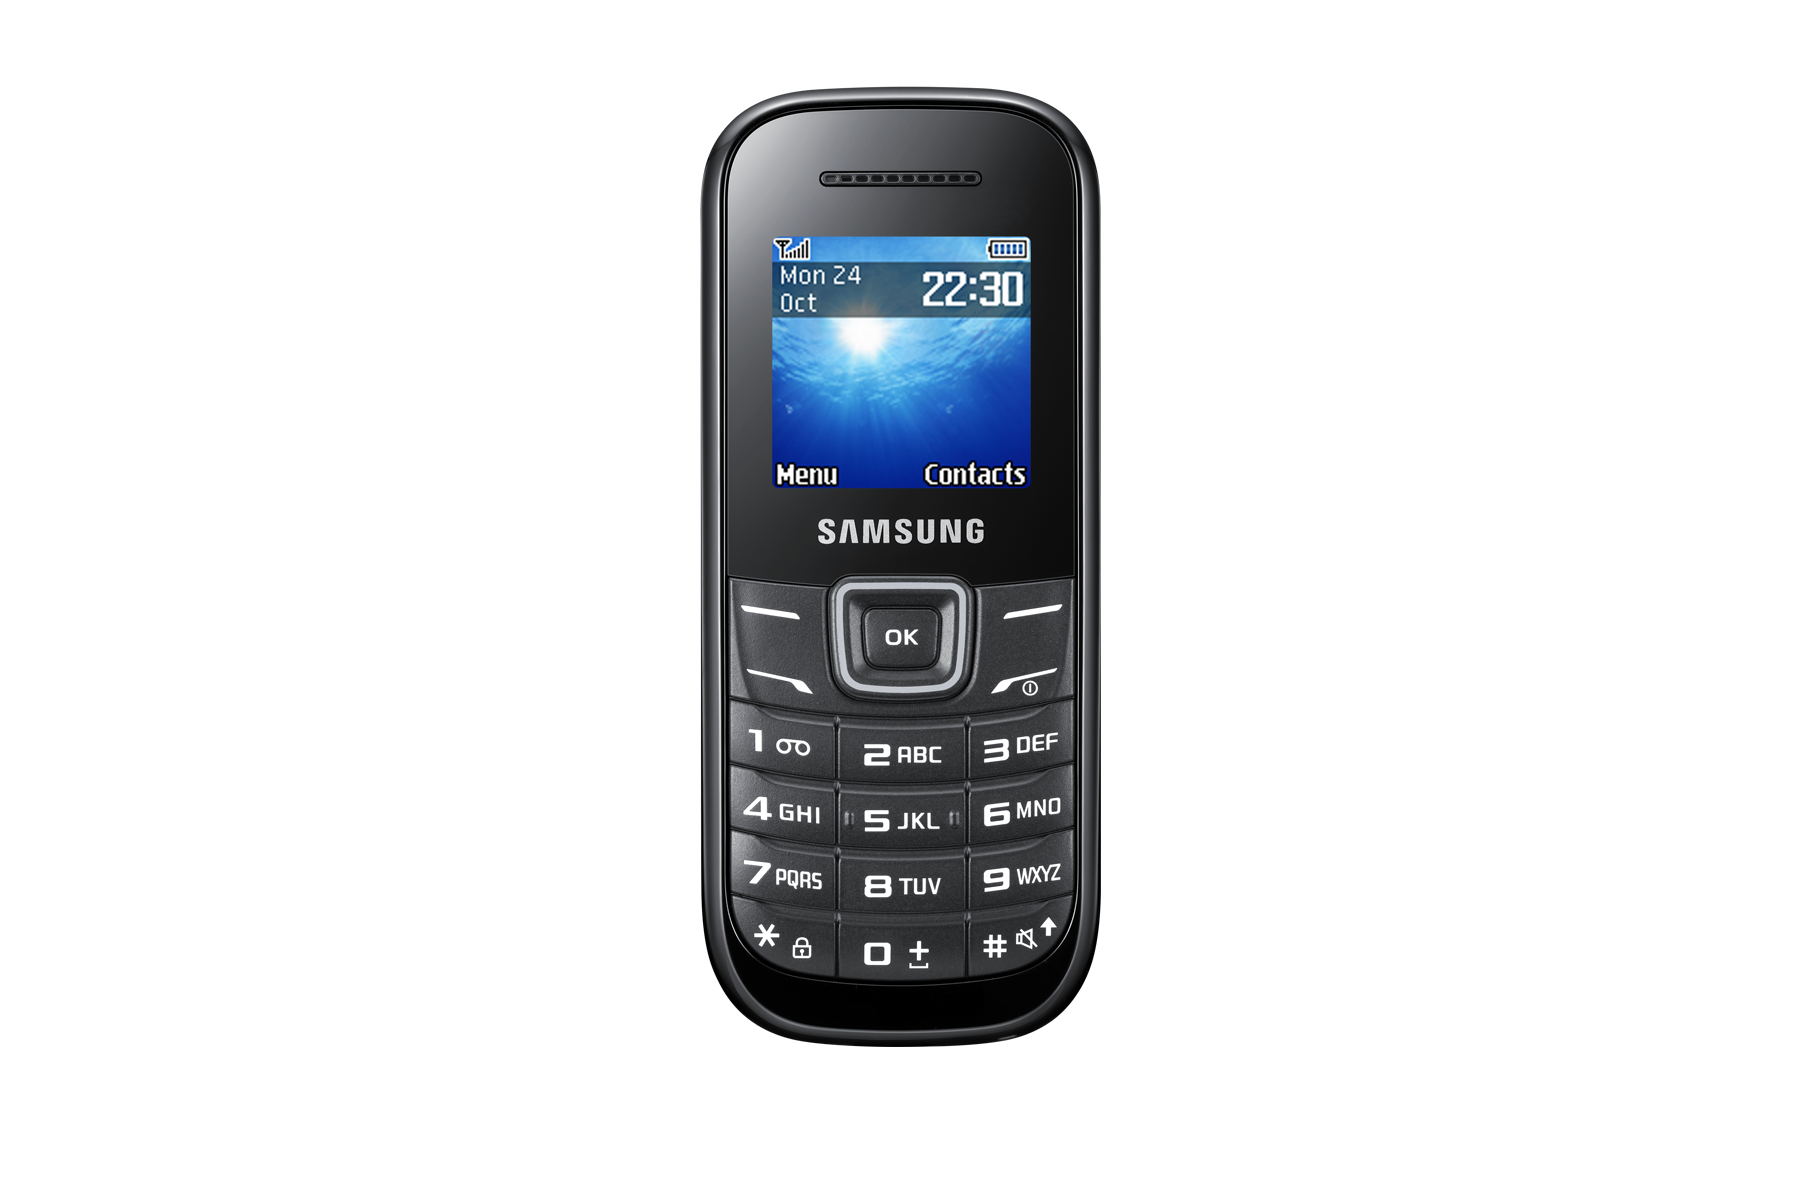 Samsung E1200 (Black) - See Full Specs and more | Samsung UK